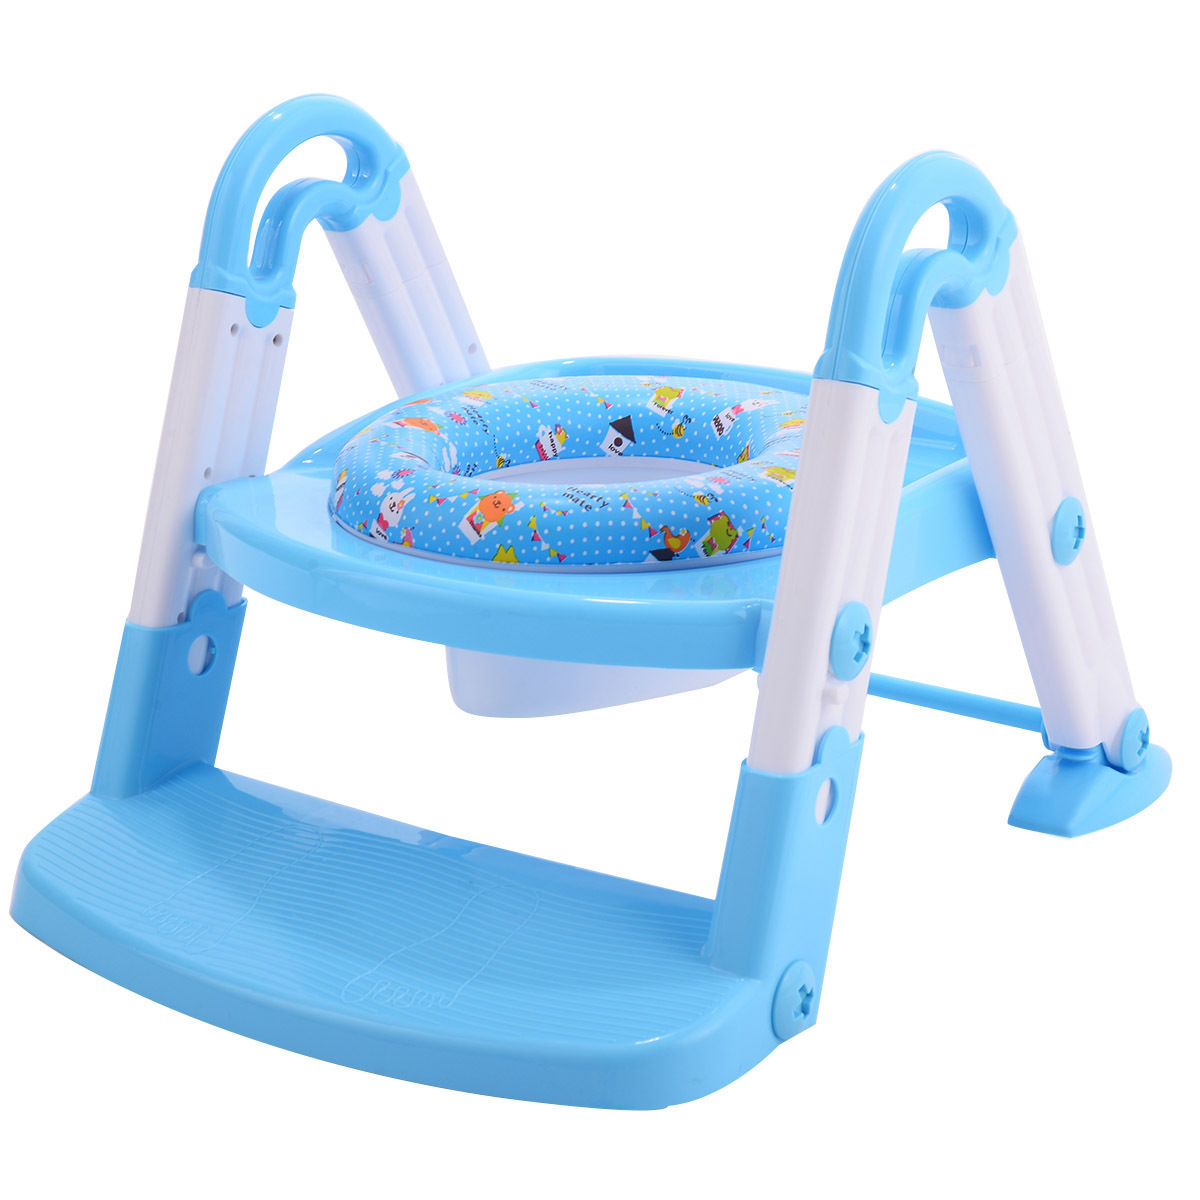 Costway 3 in 1 Baby Potty Training Toilet Chair Seat Step Ladder ...